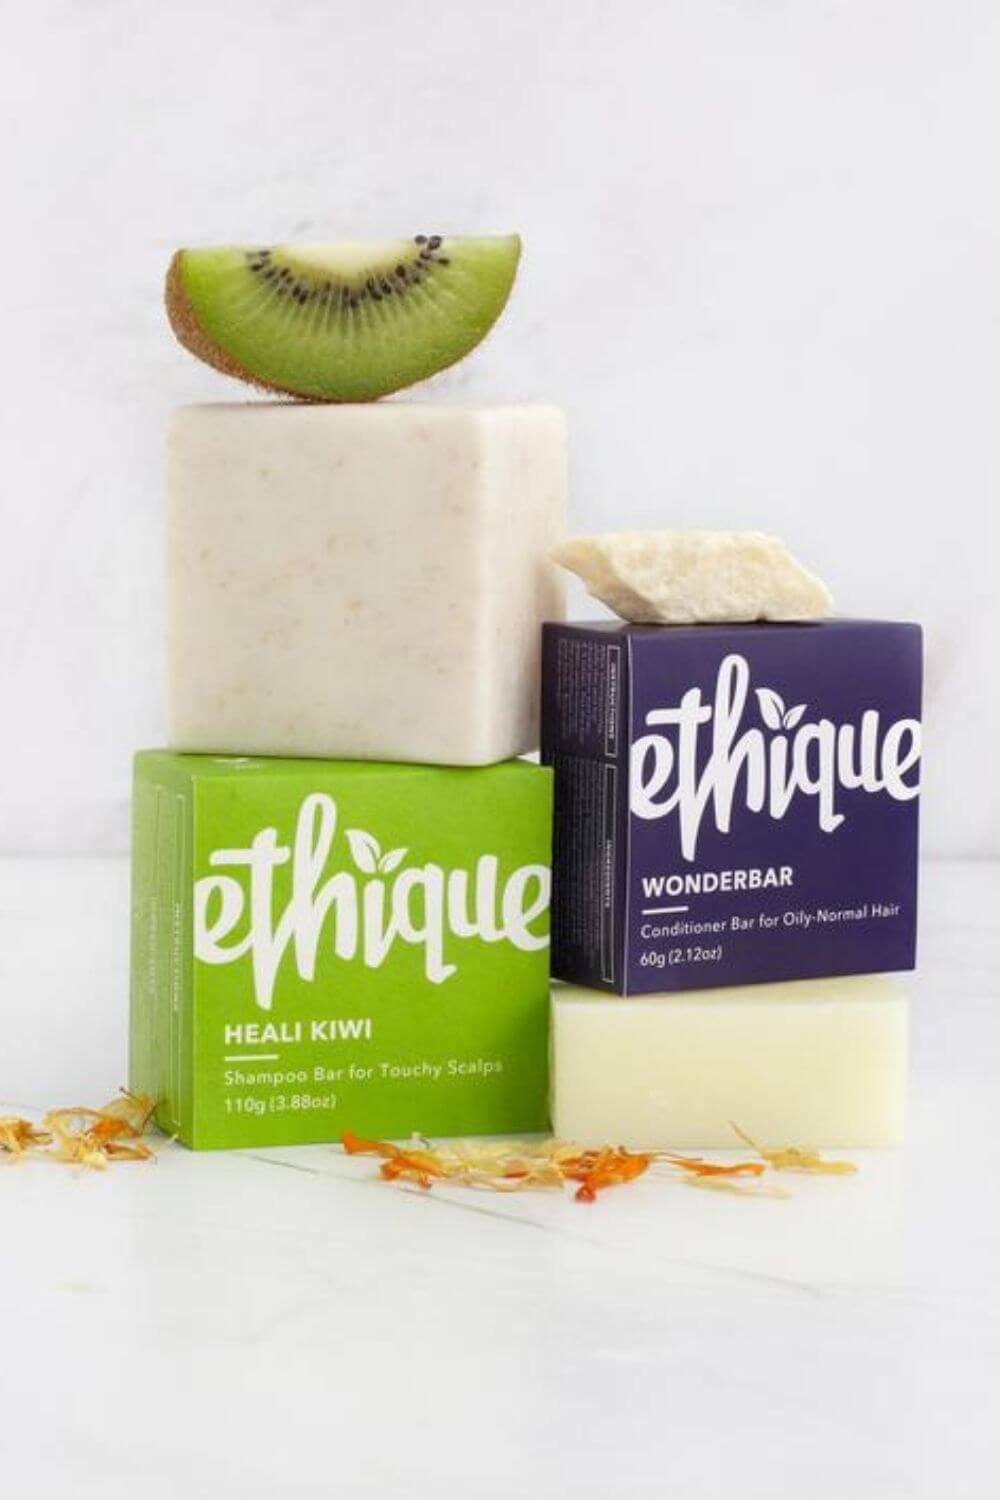 We've covered lots of great zero waste beauty products that are better for you AND the environment. Now we're narrowing it down to the best of the best. Image by Ethique #zerowastebeauty #sustainablebeauty